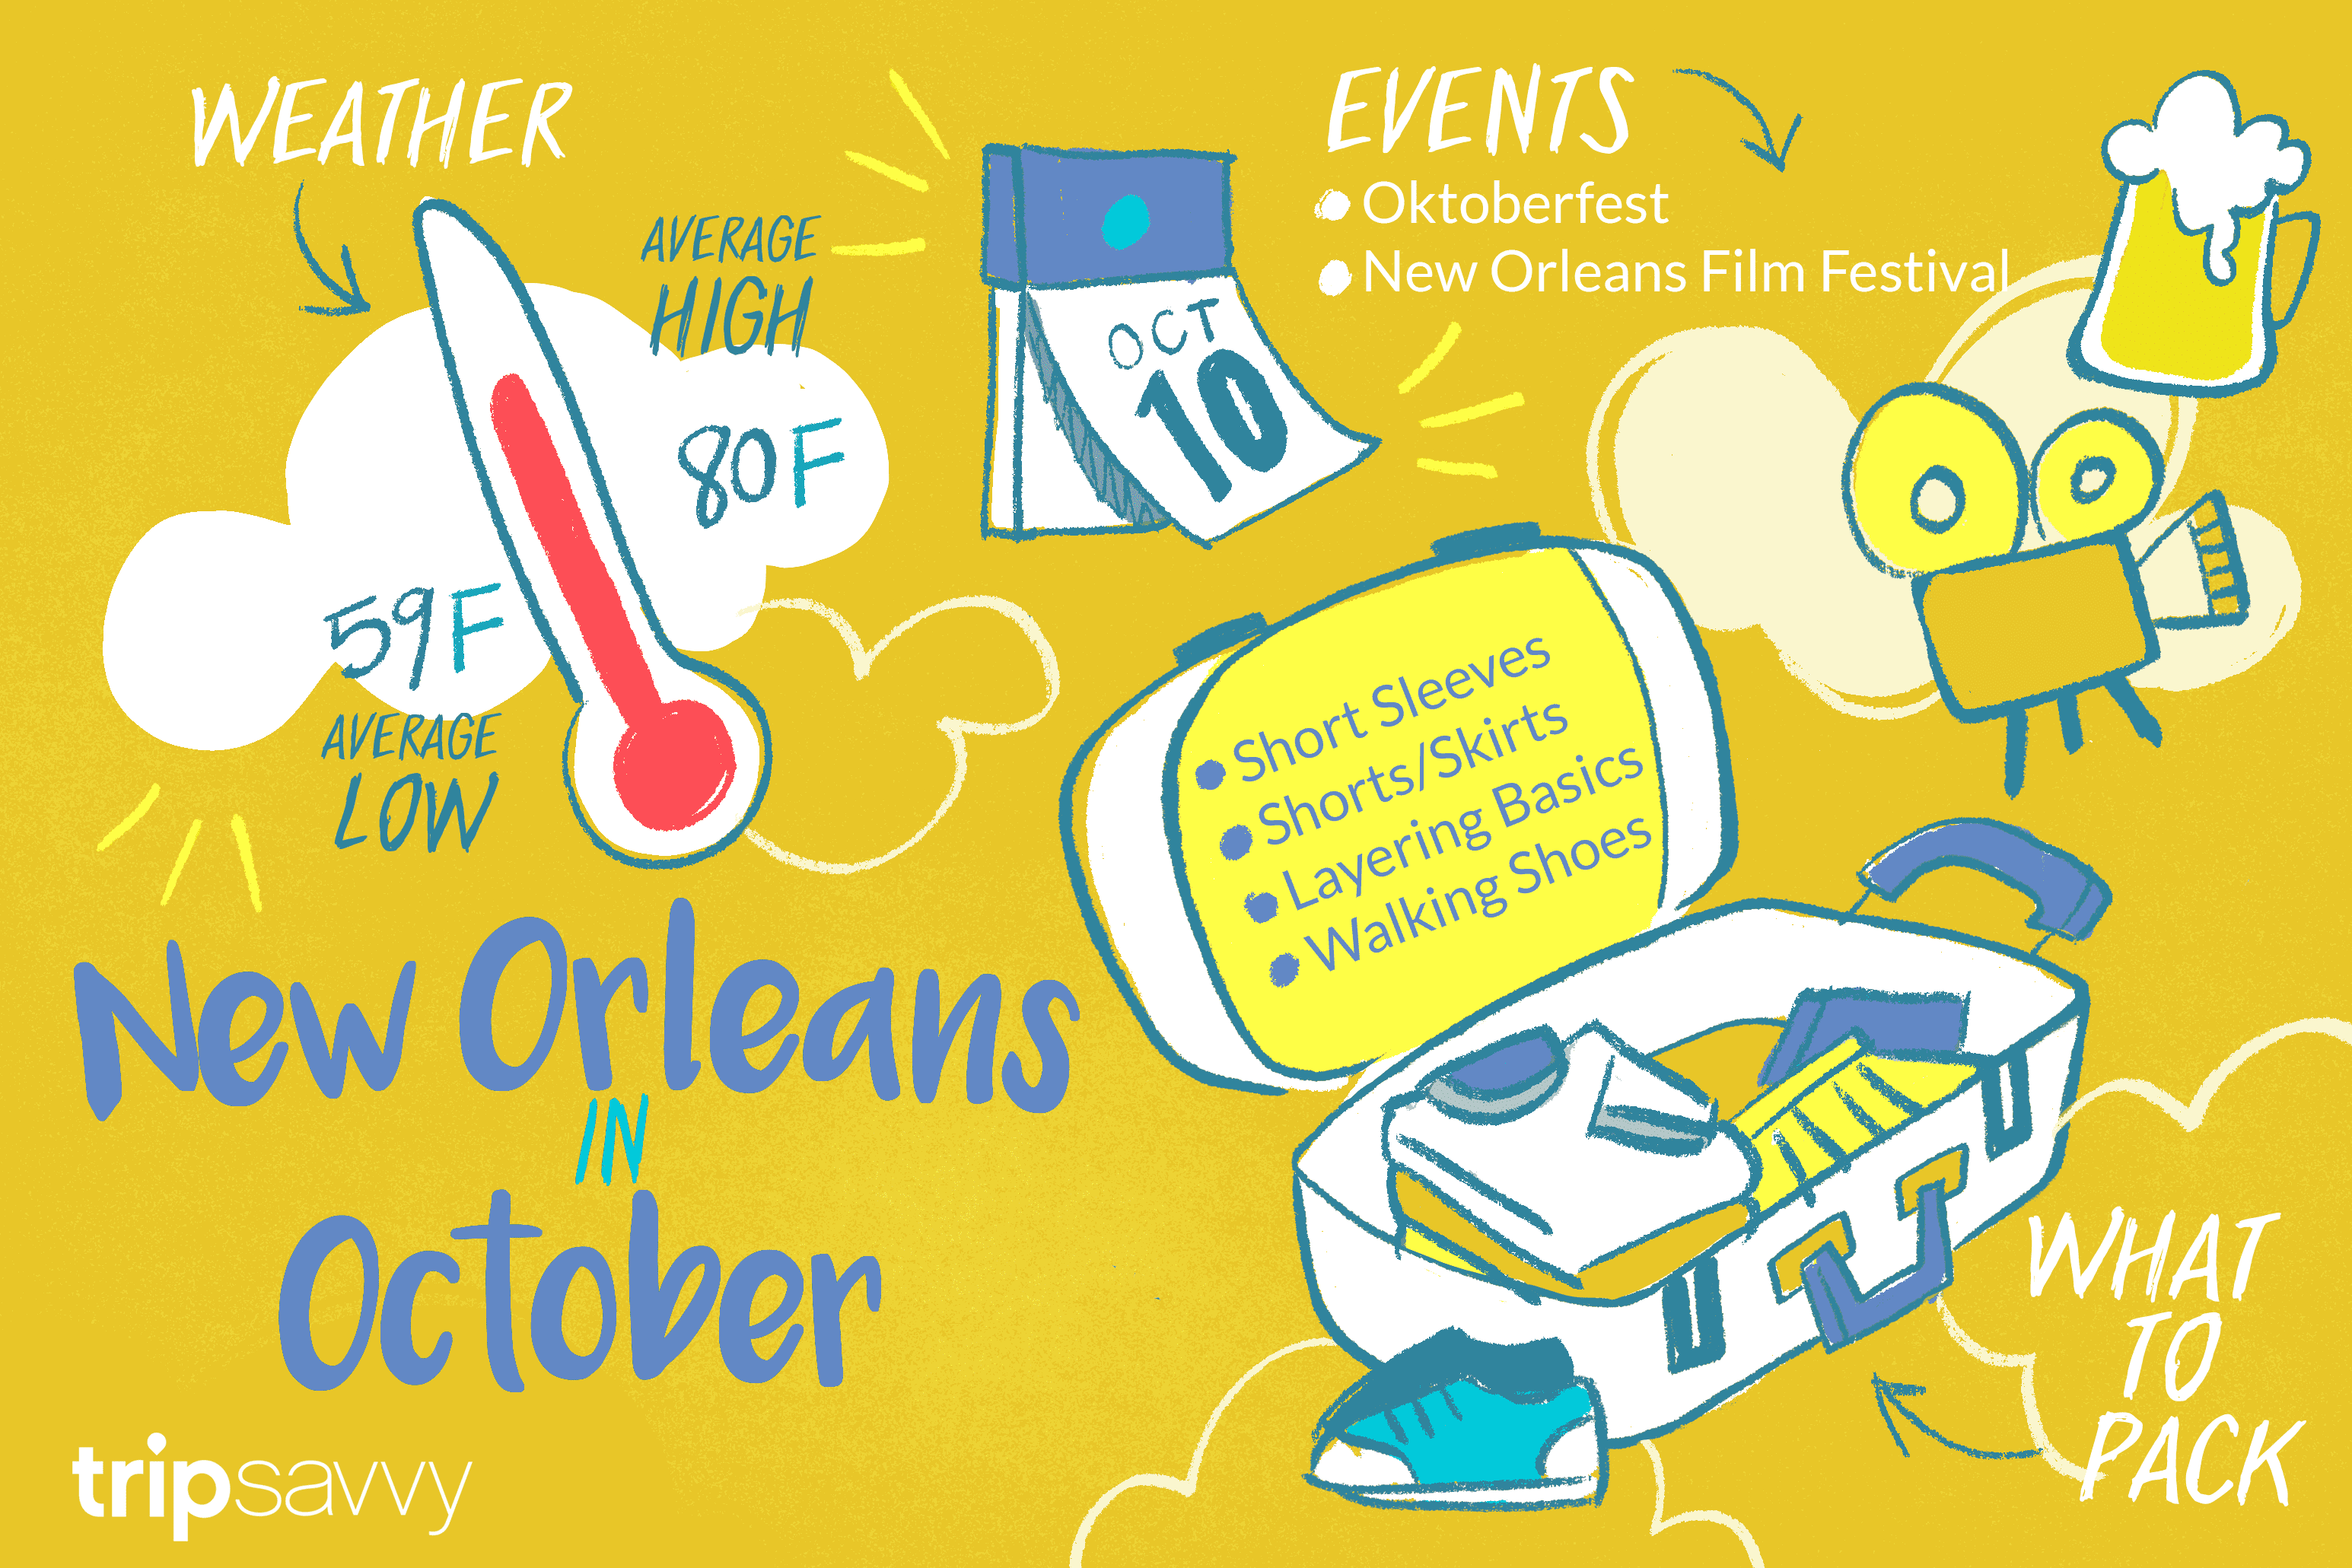 October in New Orleans Weather, What to Pack, and What to